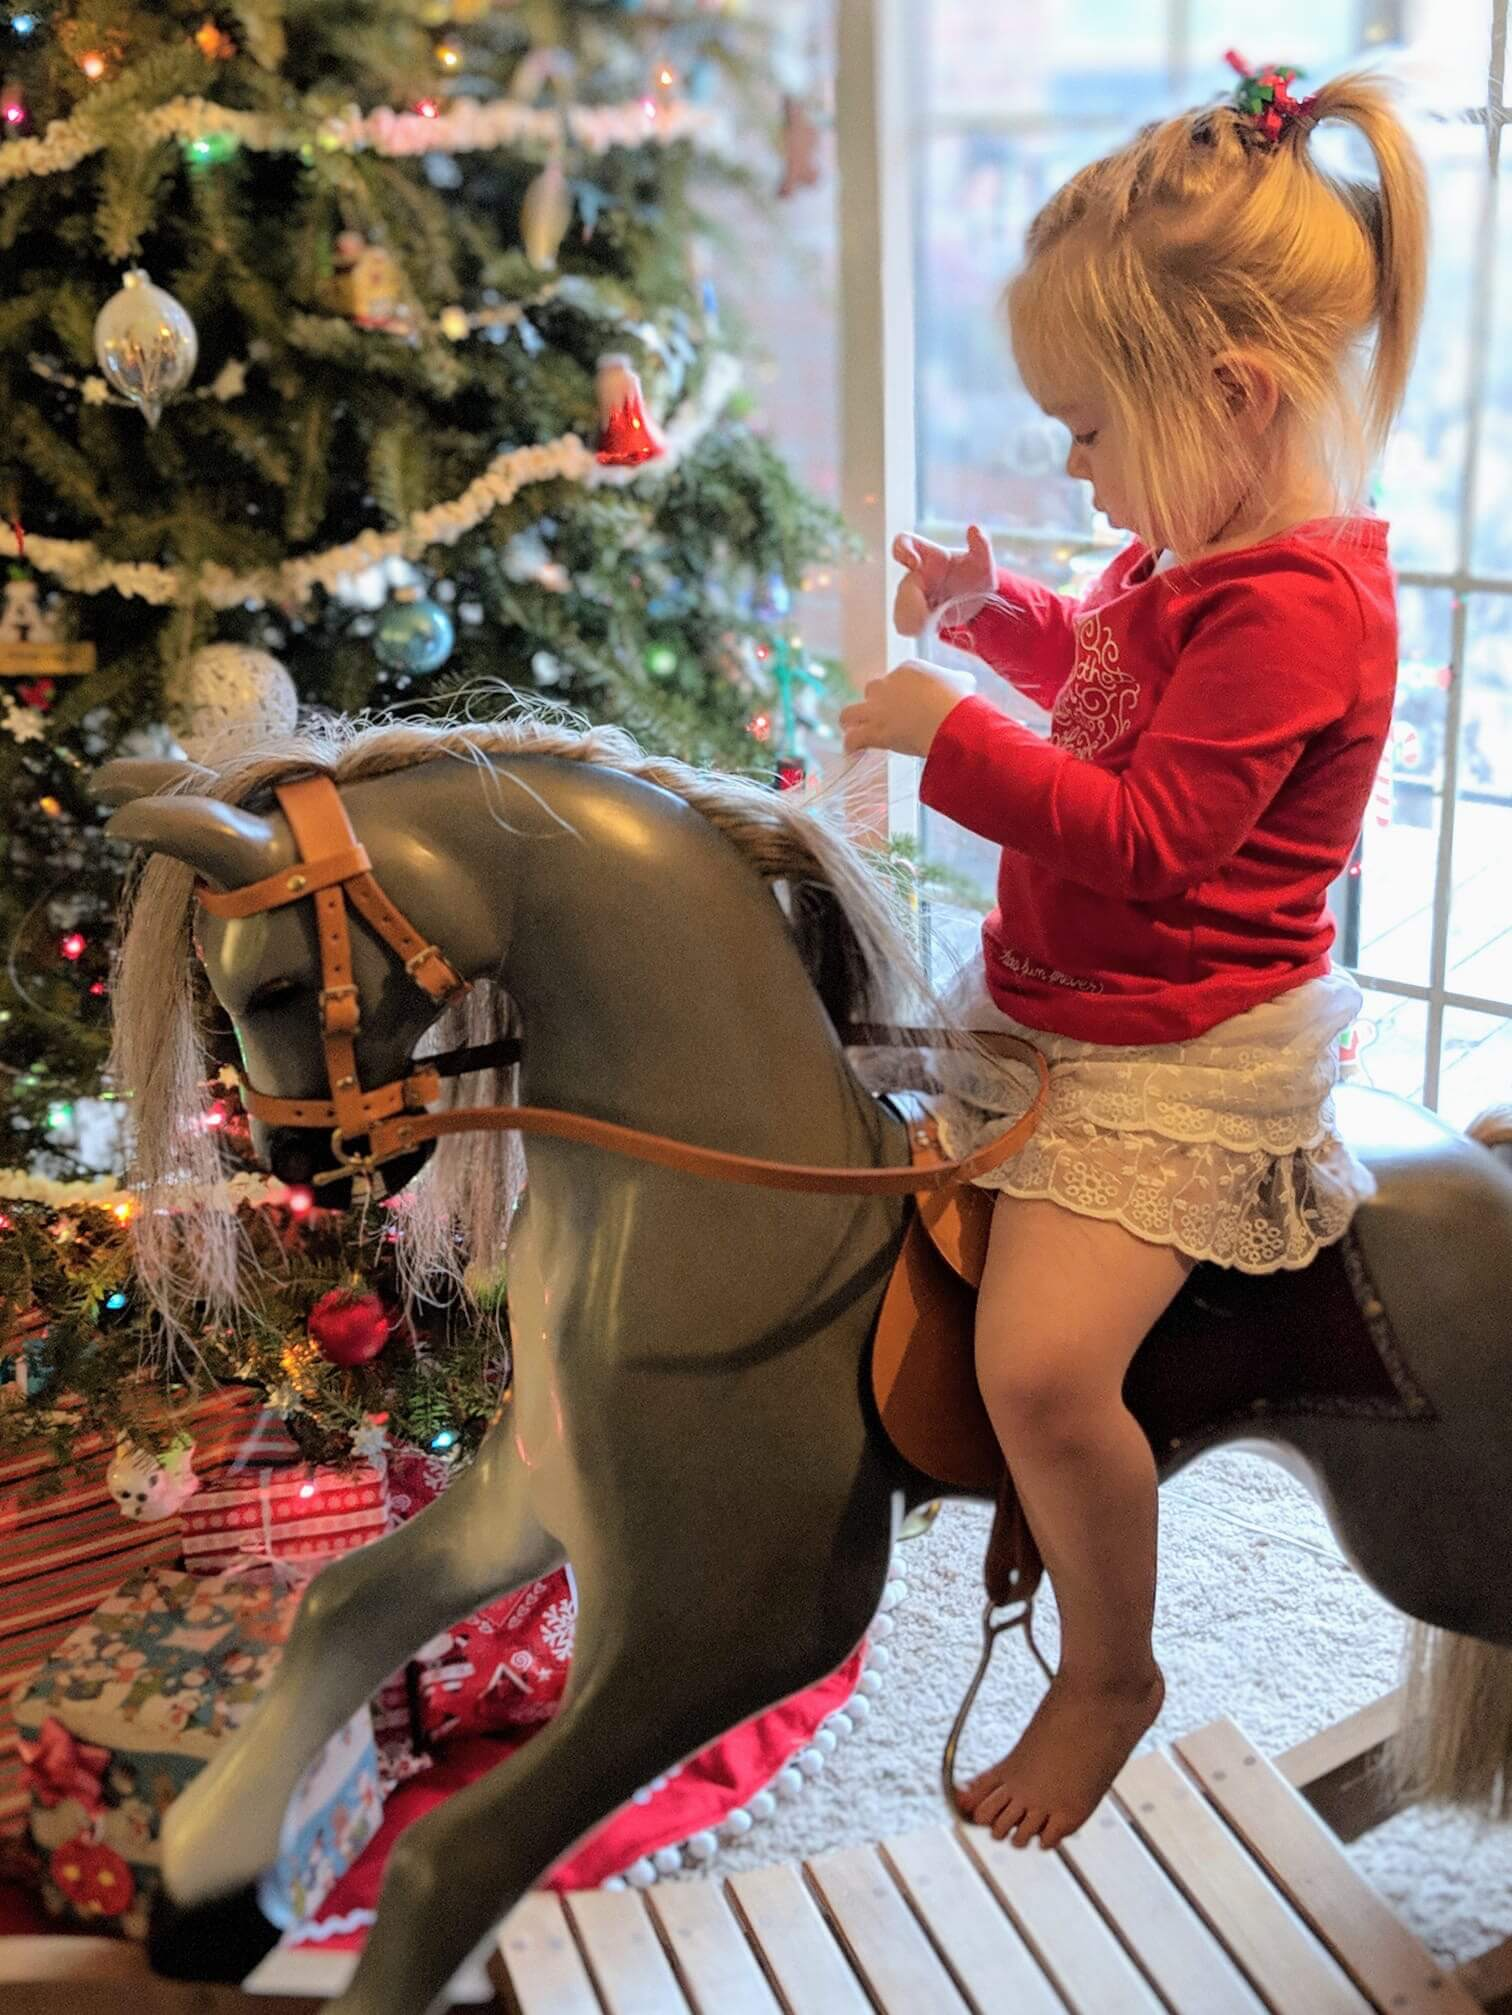 2 year old girl on a hand carved rocking horse in front of a Christmas treee